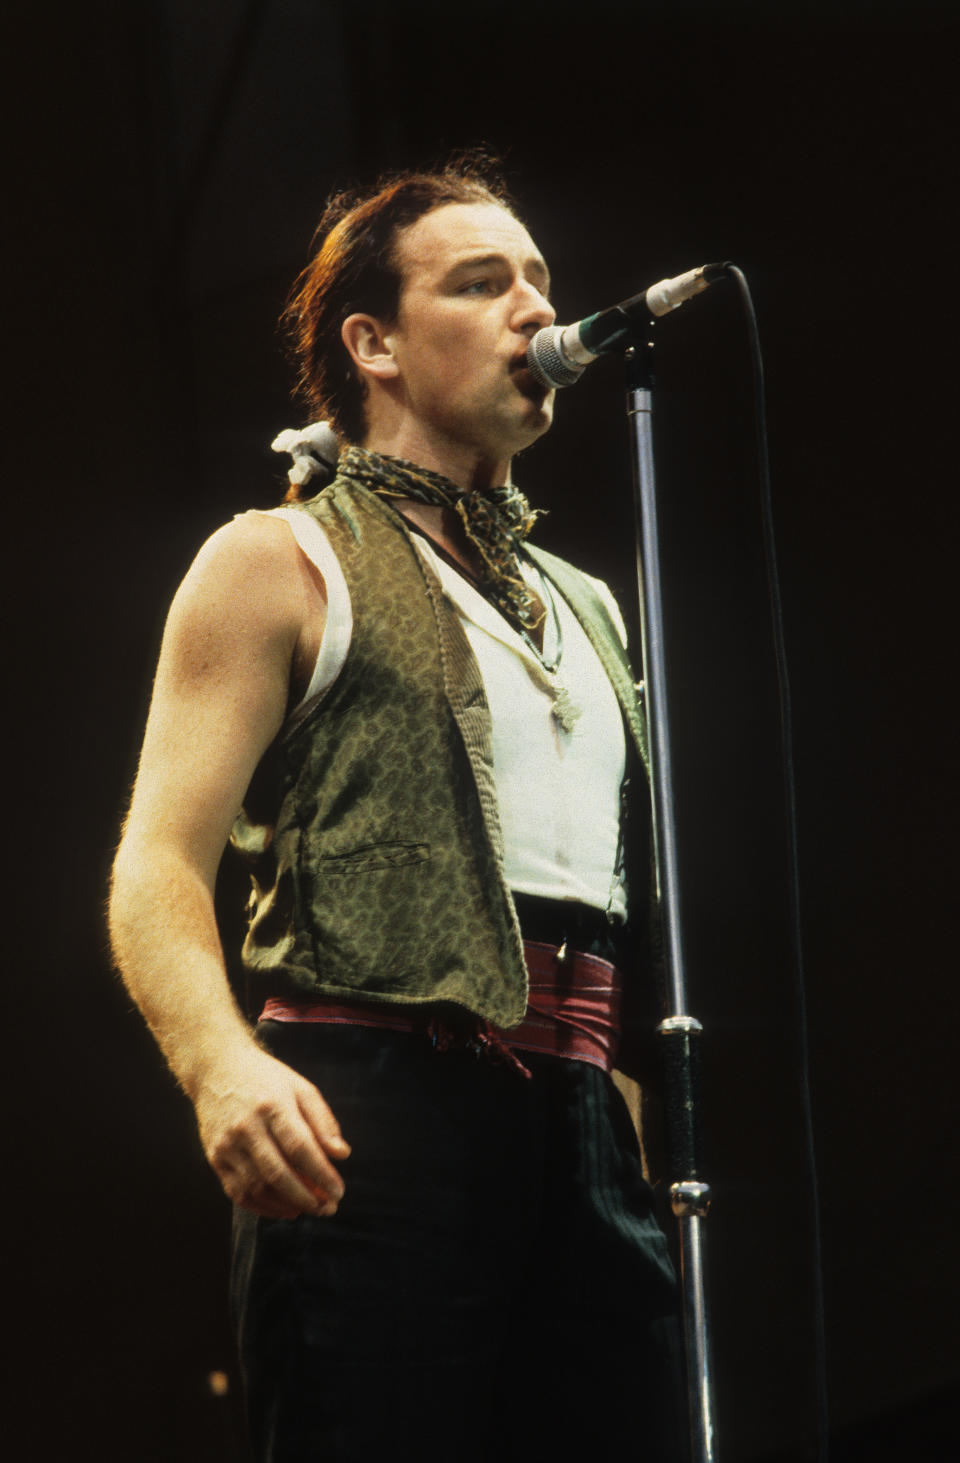 Bono of U2 performs on stage on The Joshua Tree Tour, Feyenoord Stadion, De Kuip, Rotterdam, Netherlands, 10th July 1987. (Photo by Rob Verhorst/Redferns)